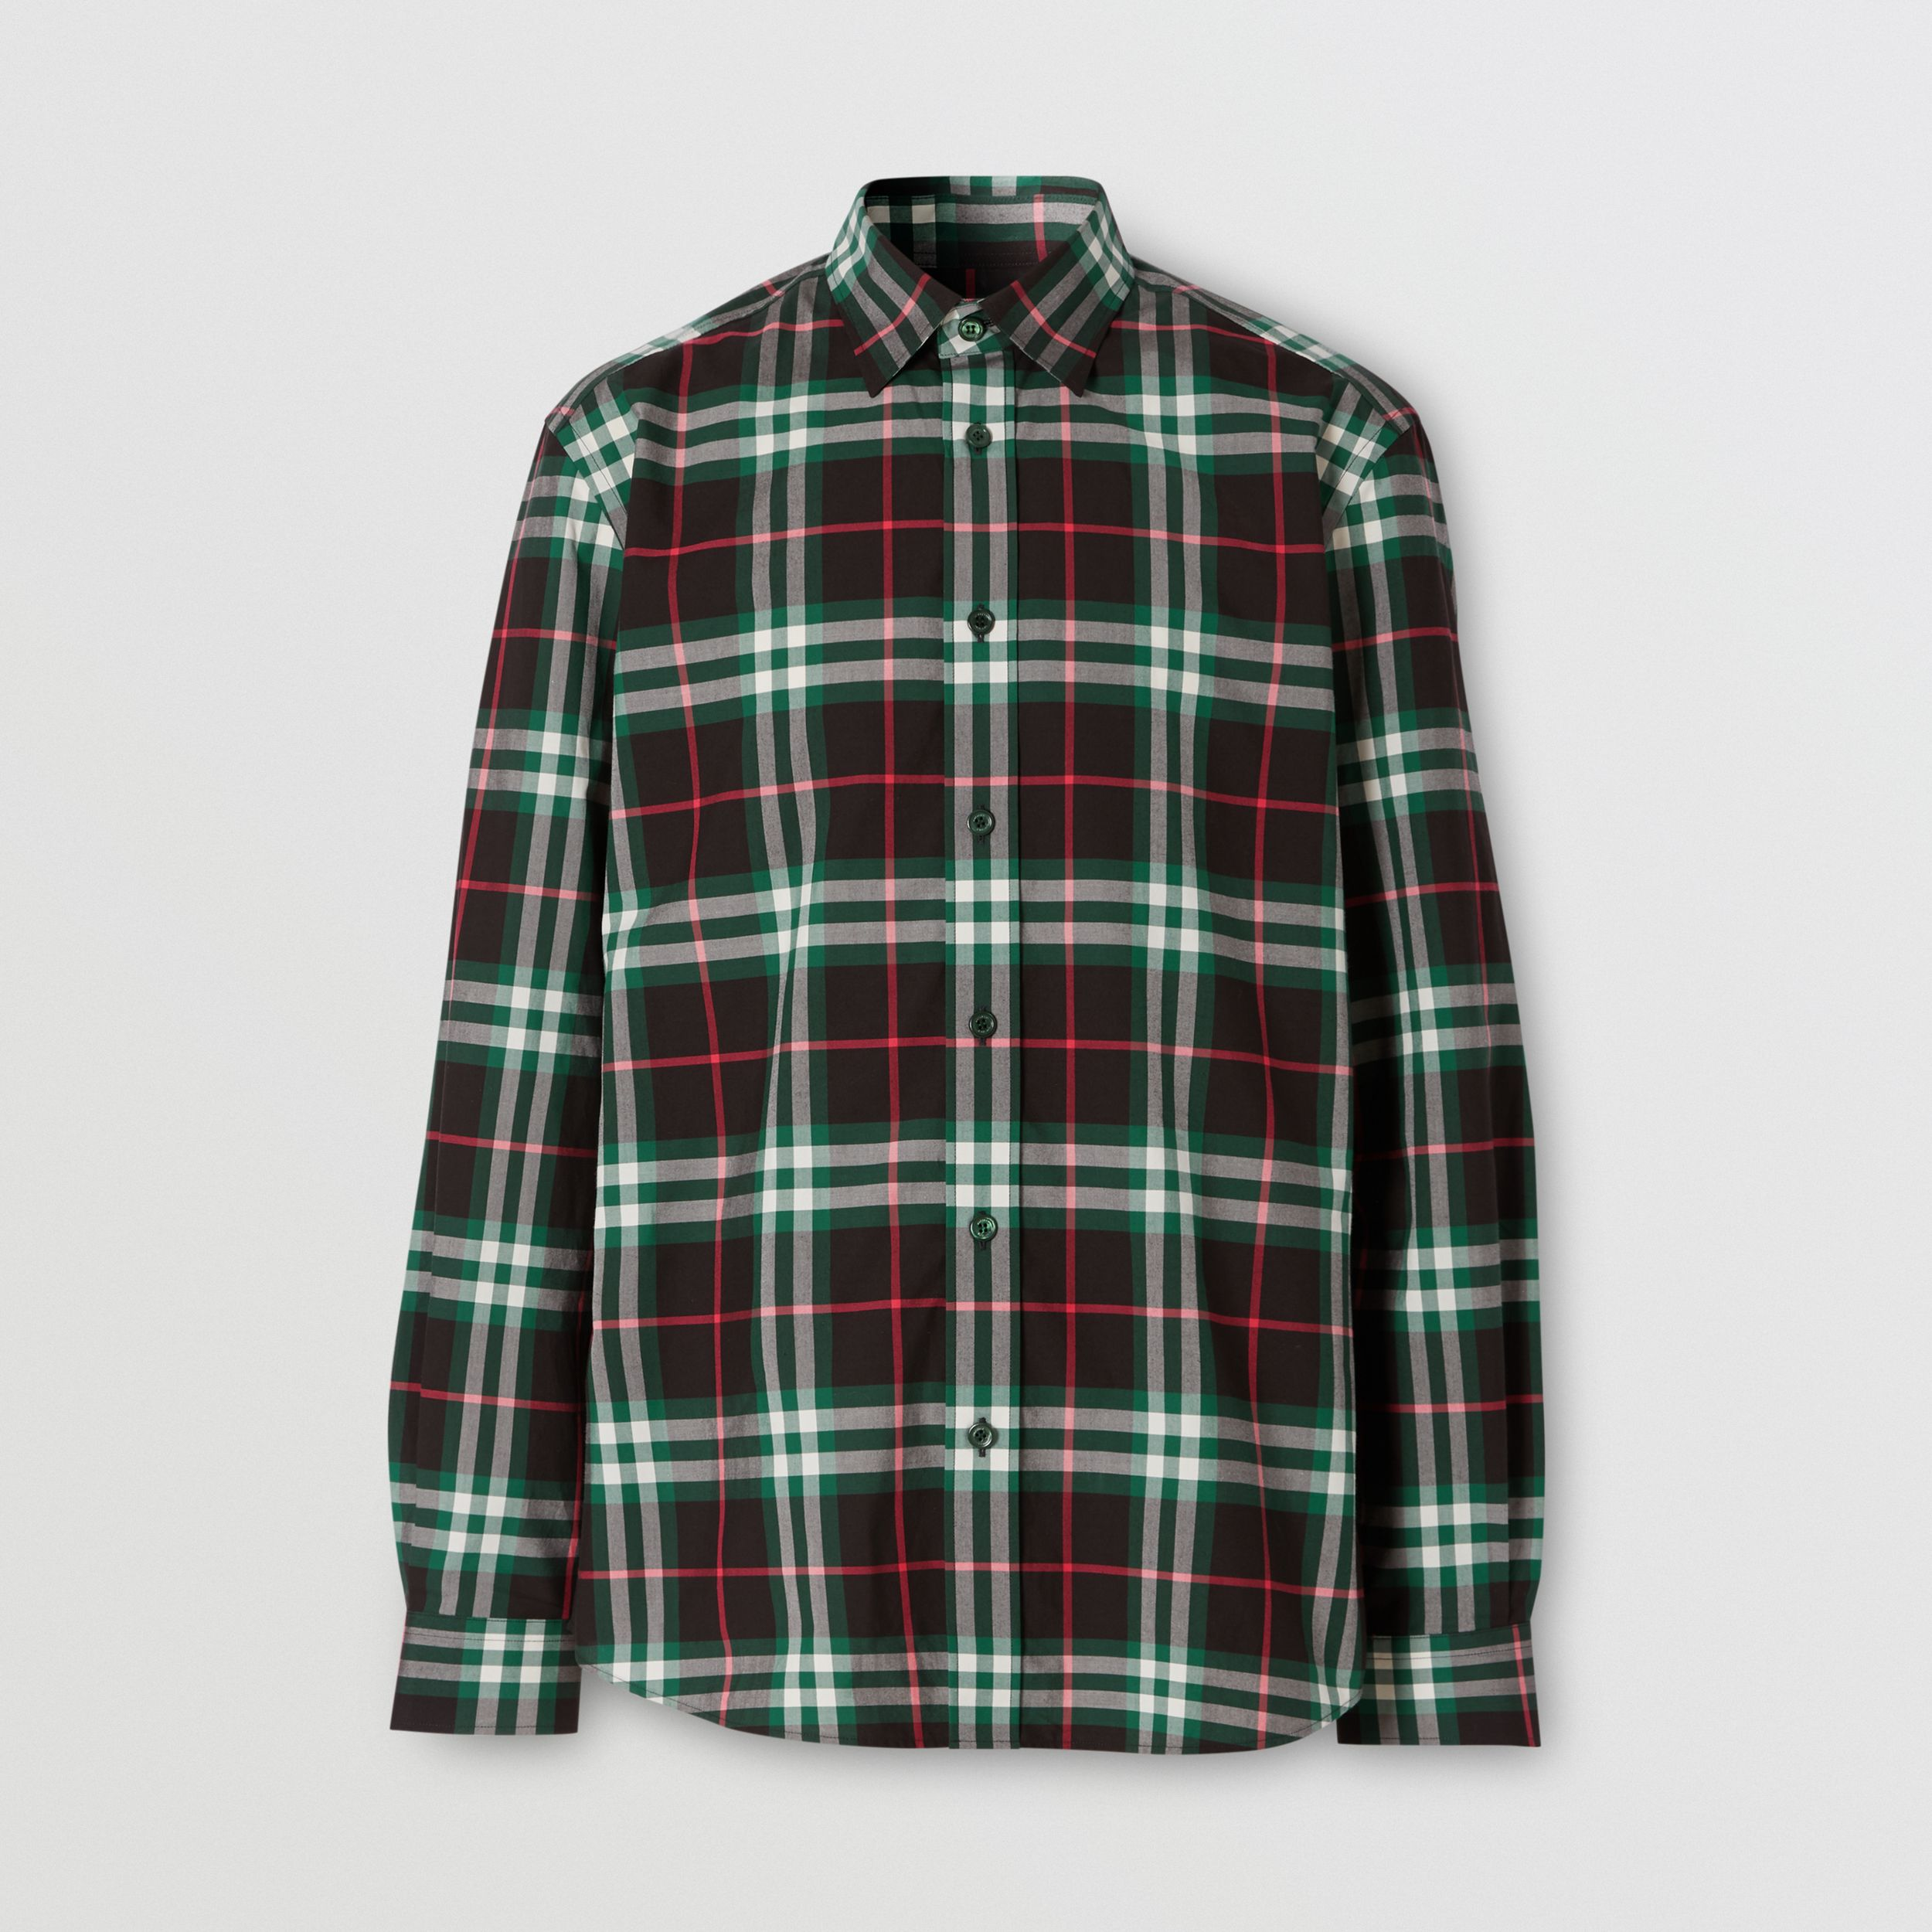 Check Cotton Poplin Shirt in Viridian Green - Men | Burberry - 4